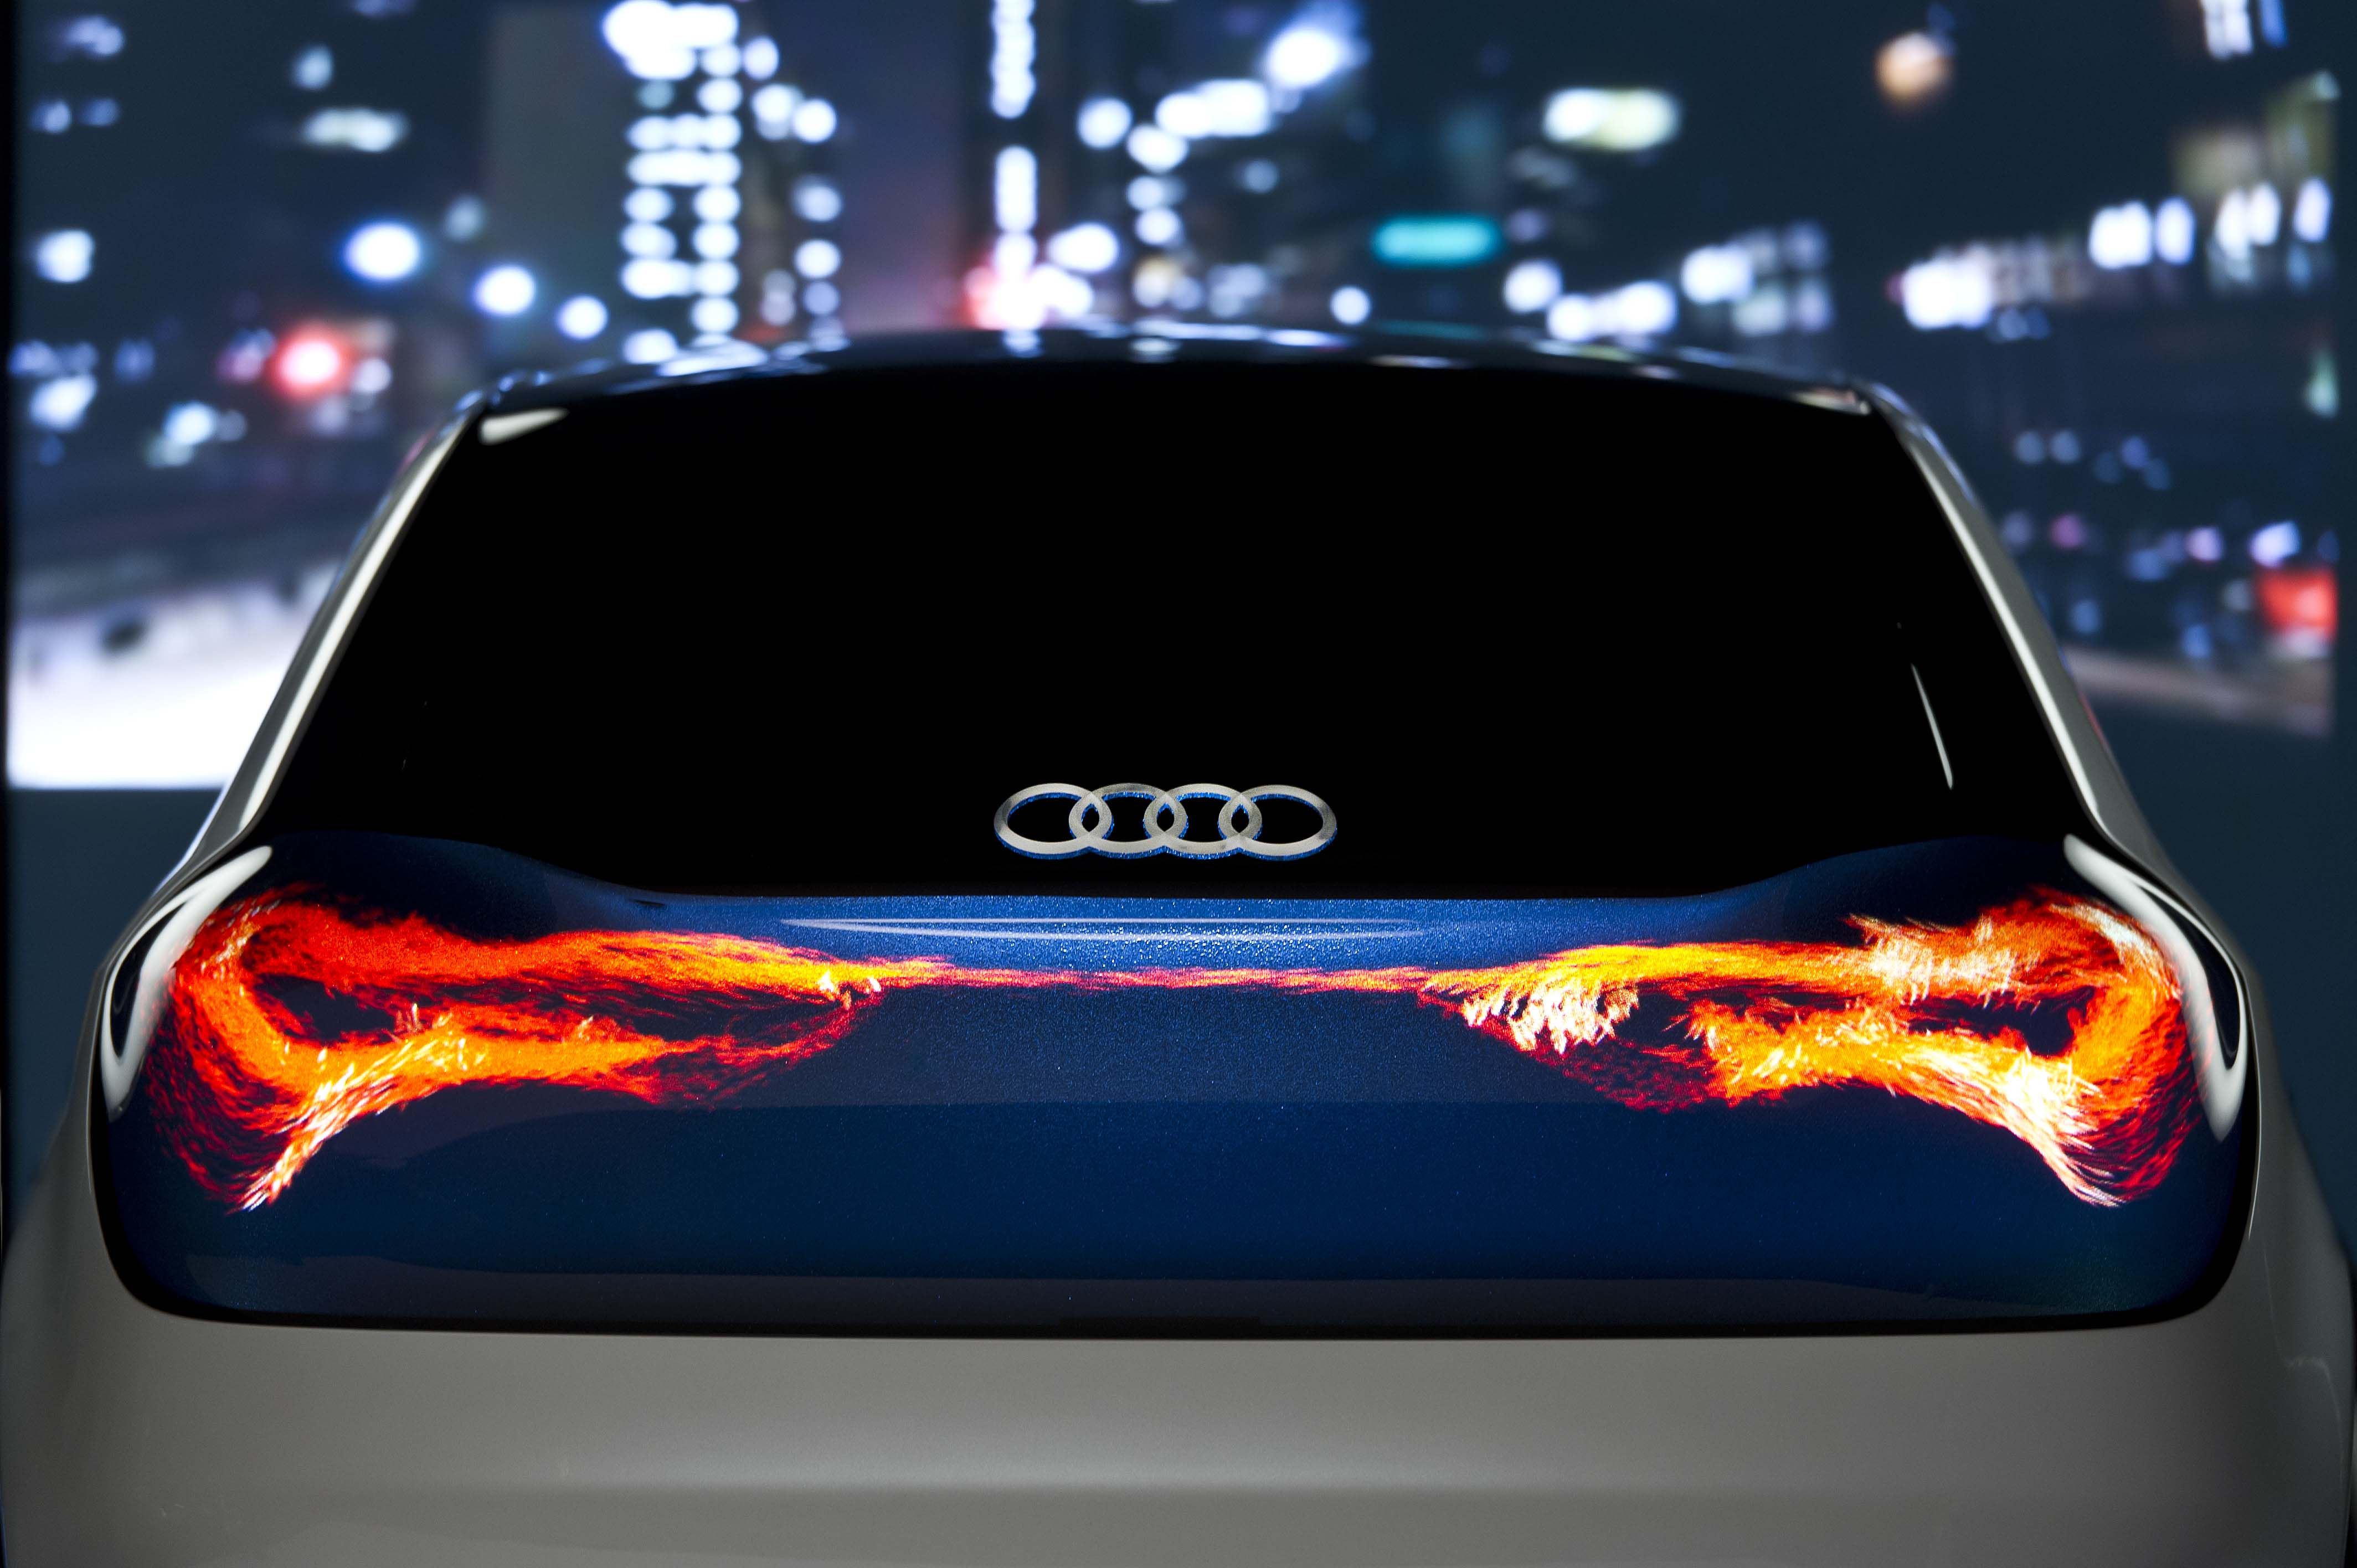 Audi 39 s swarm oled concept is beautiful but illegal too - Illegal to have interior car lights on ...